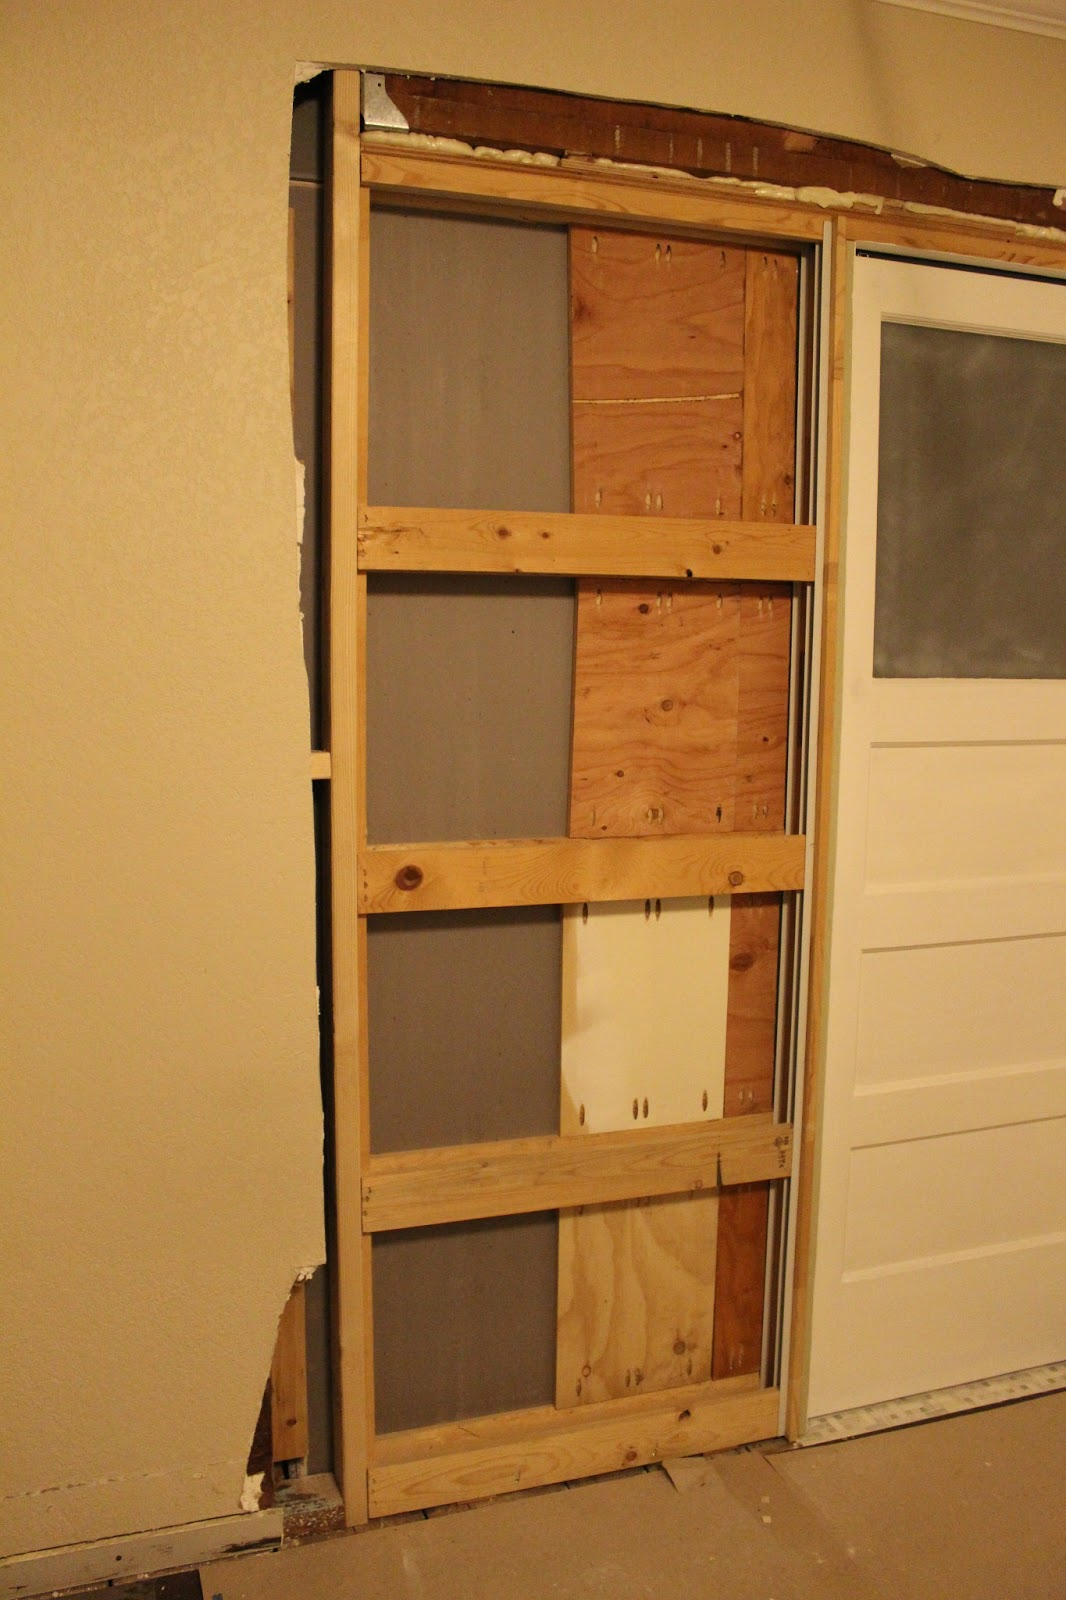 Lastly, I Installed Two Sections Of Scrap 3/4u2033 Plywood In Between The Gaps  In The Frame. I Used Pocket Screws And PL Premium To Attach These Pieces Of  ...